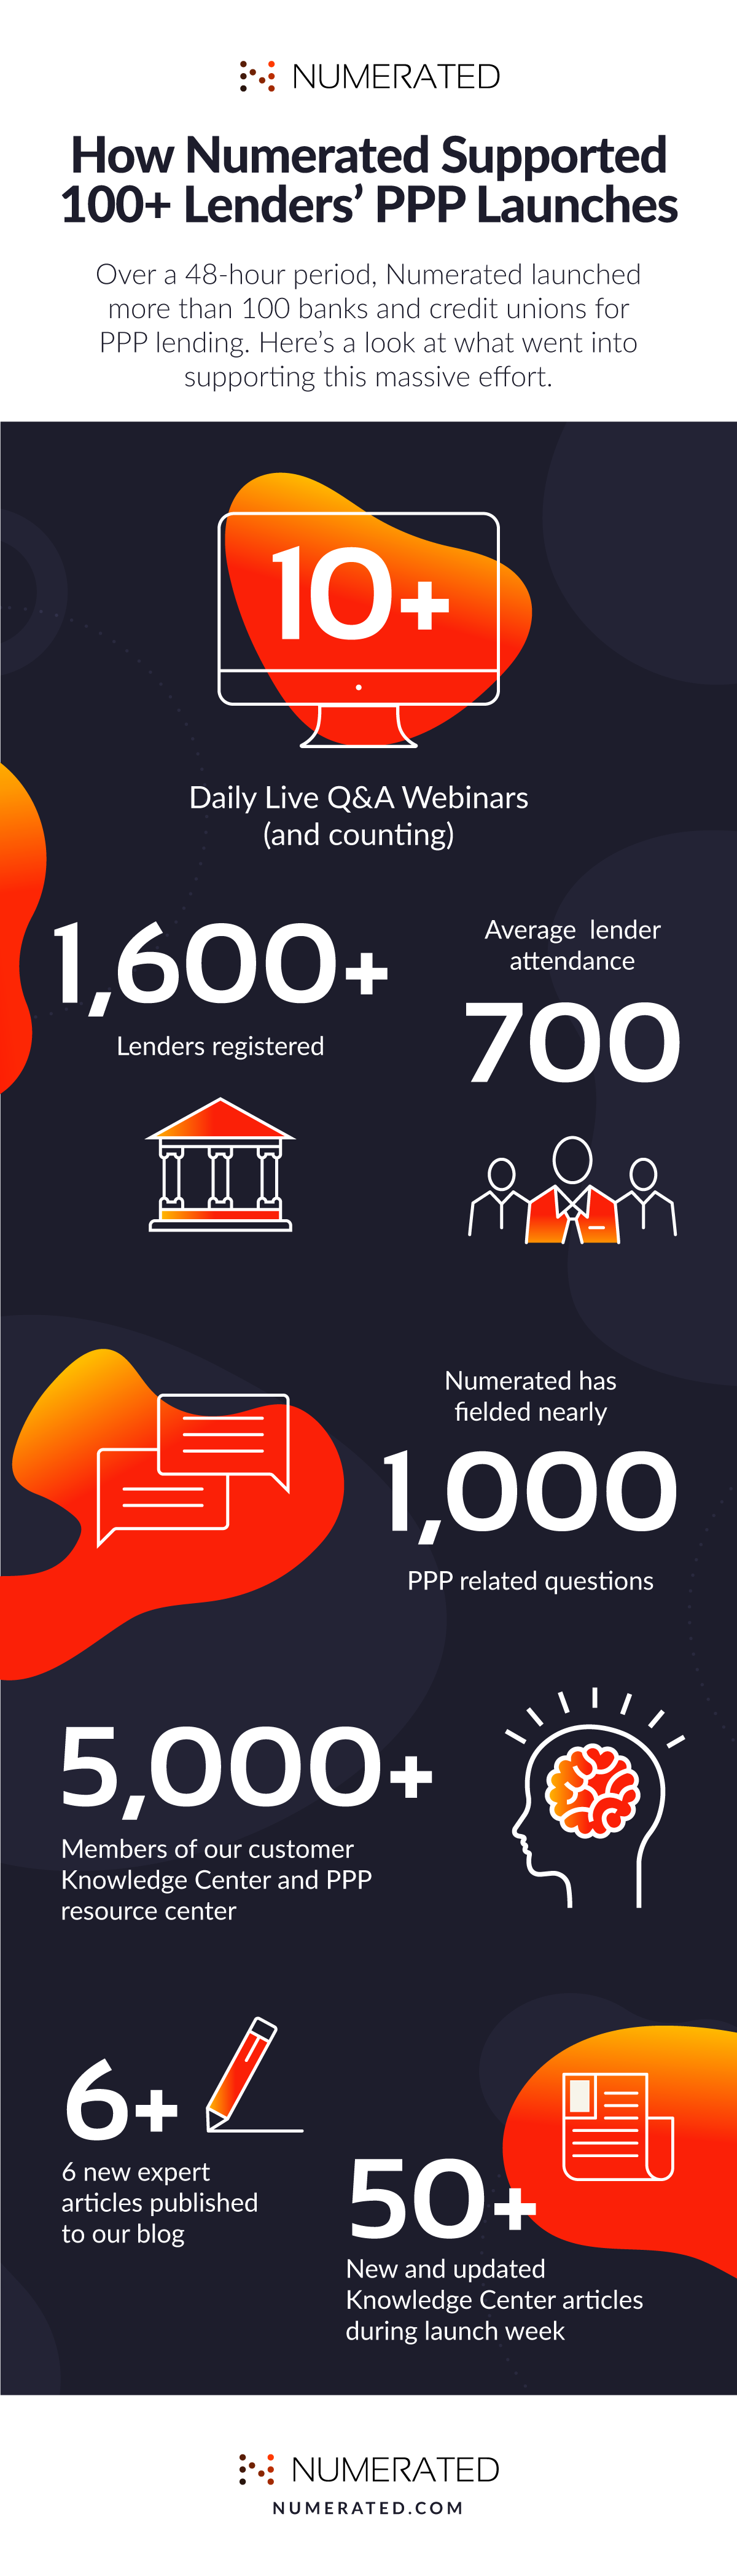 Numerated_PPP_Infographic-Final(2)